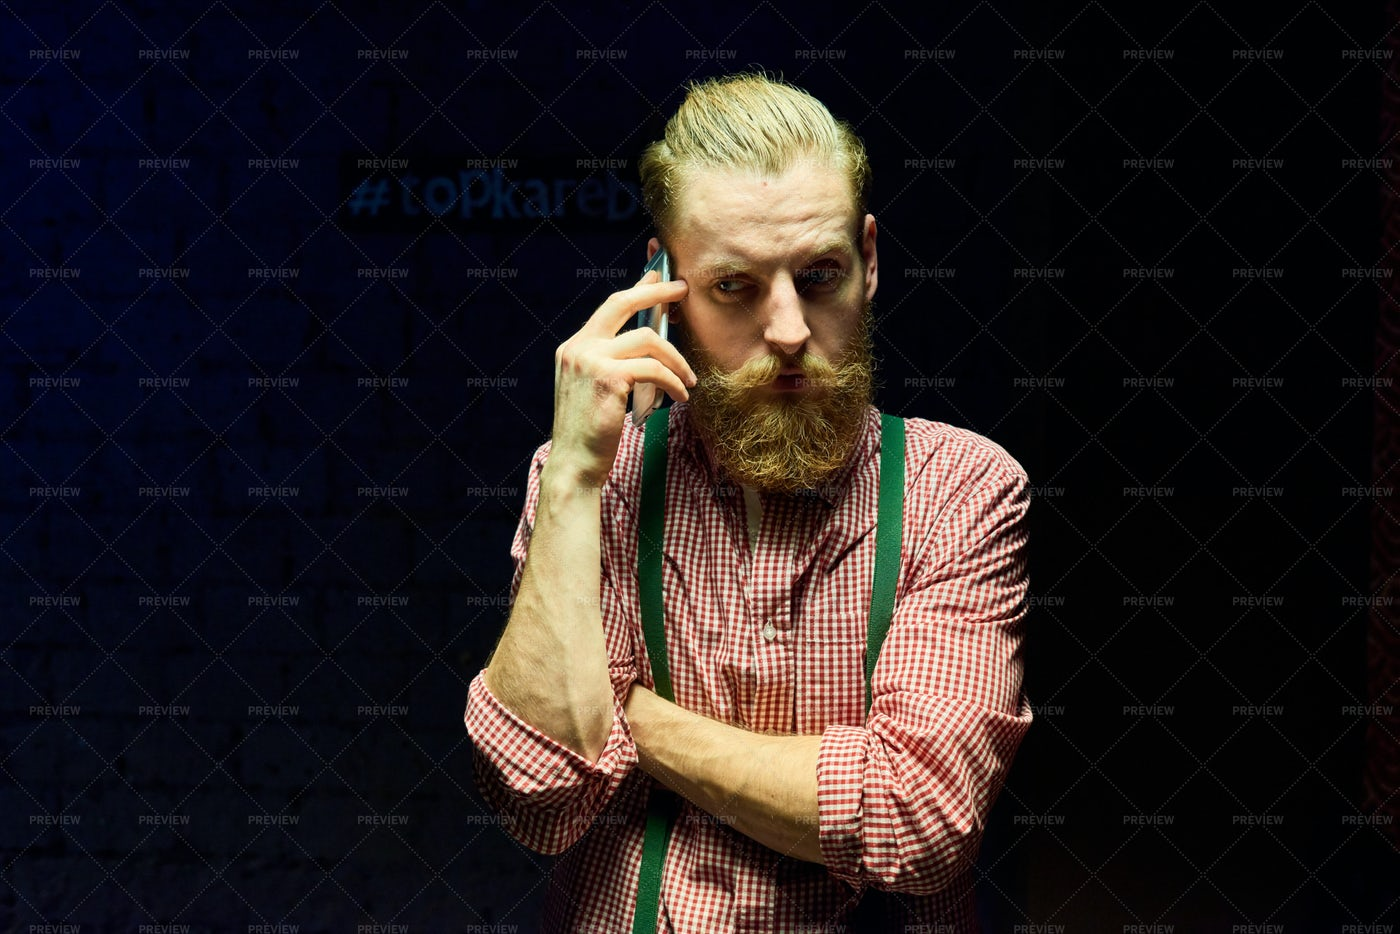 Hipster Speaking By Phone Against...: Stock Photos